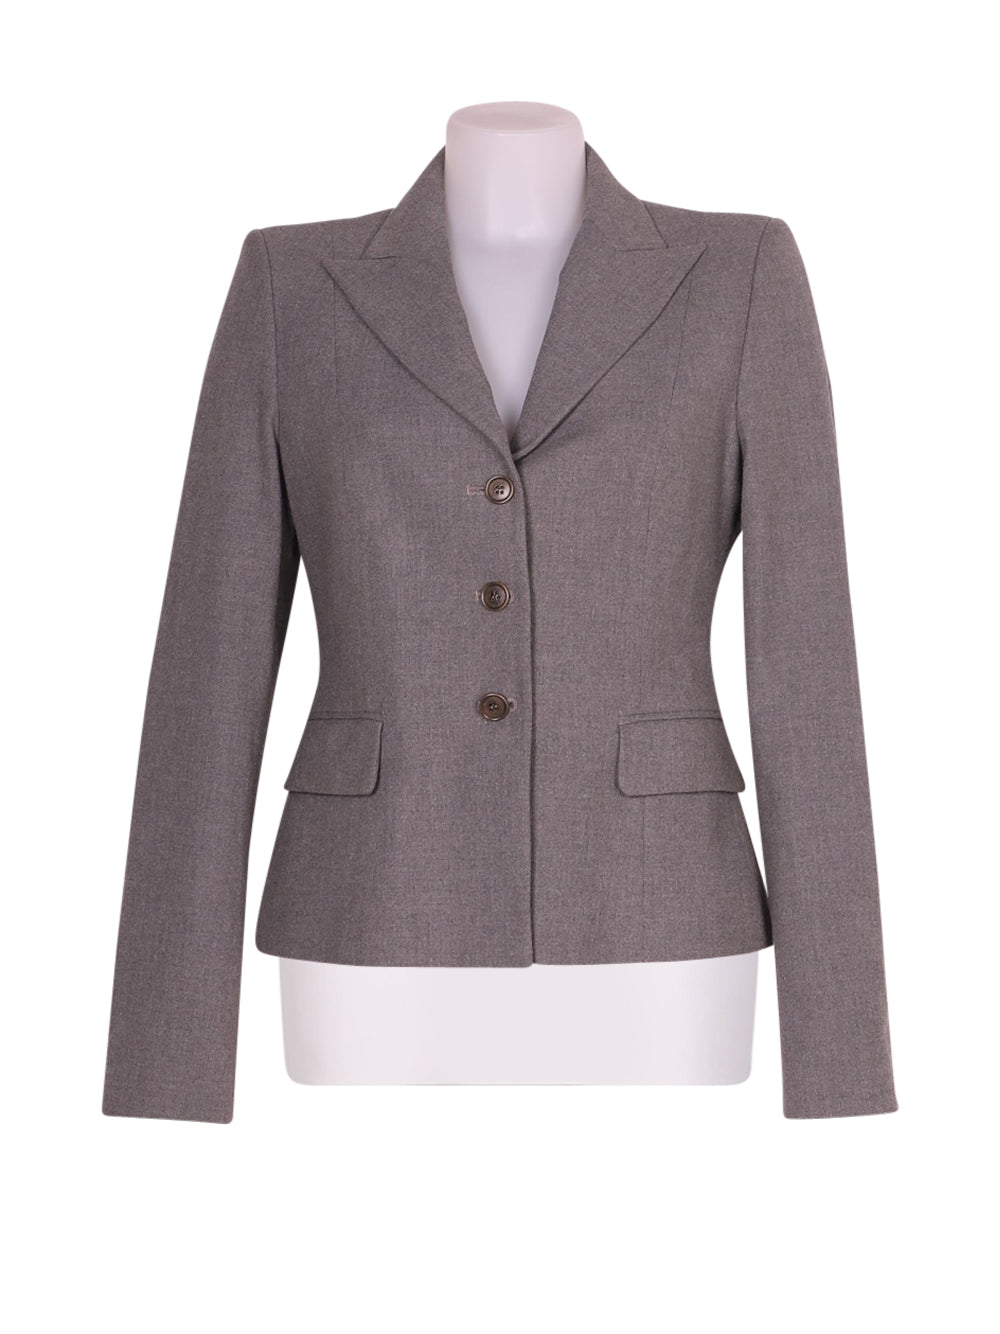 Front photo of Preloved Sisley Grey Woman's blazer - size 10/M